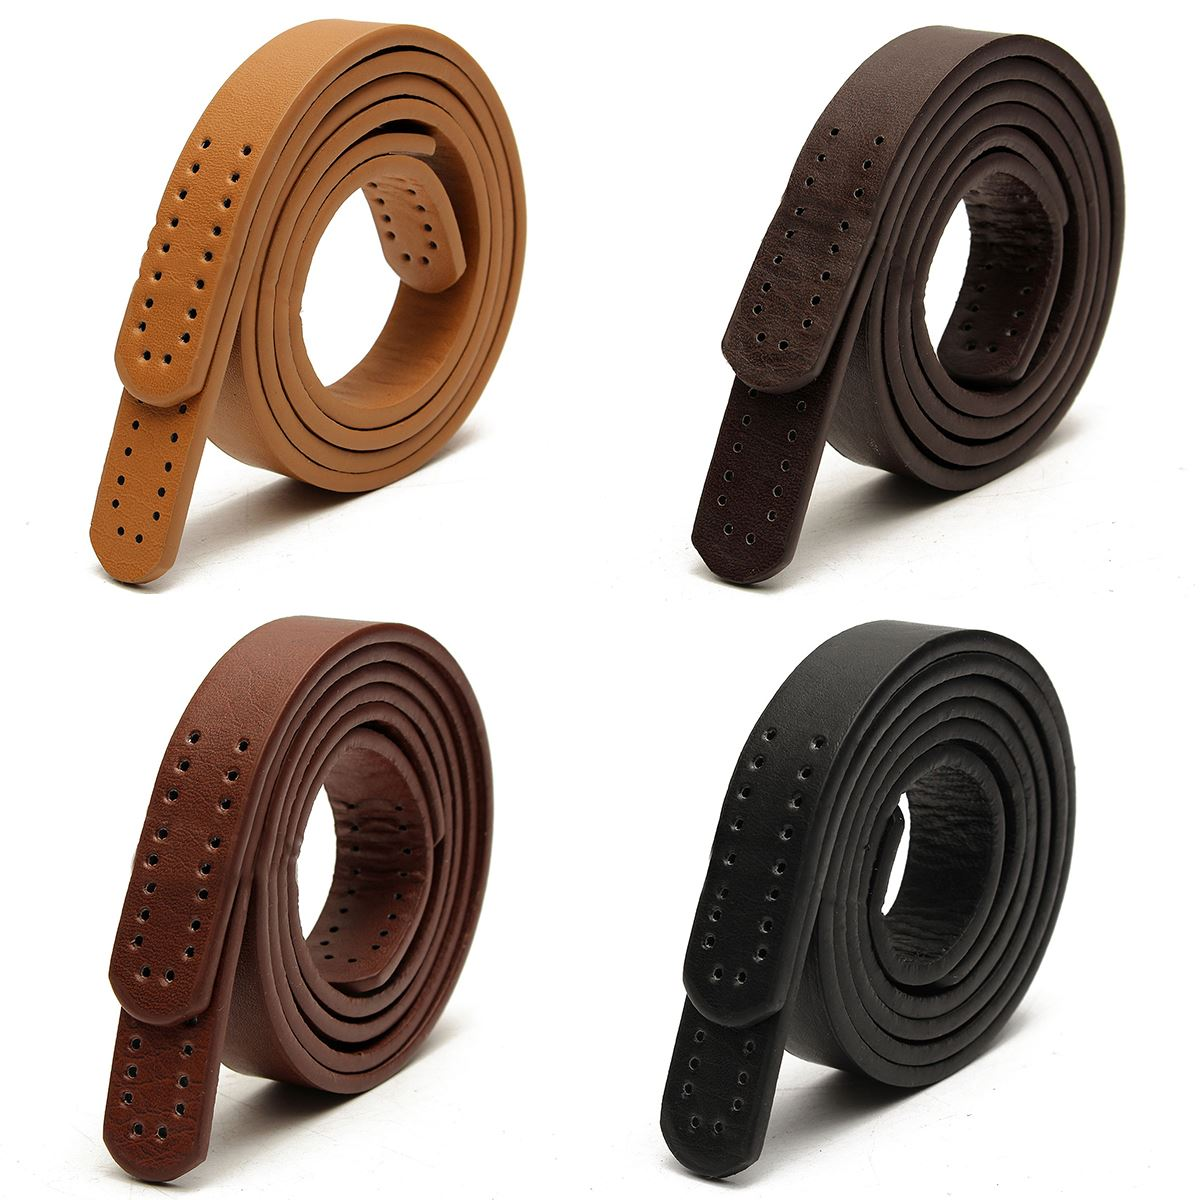 2pcs/lot 54cm Long Straps Detachable PU Leather Bag Strap Shoulder Belt Handle Shoulder Bag Accessories Belts Handbag Bagband new road ya bait 101 all round swimming gear fishing lure valuable package lures set kit soft and hard lure hooks